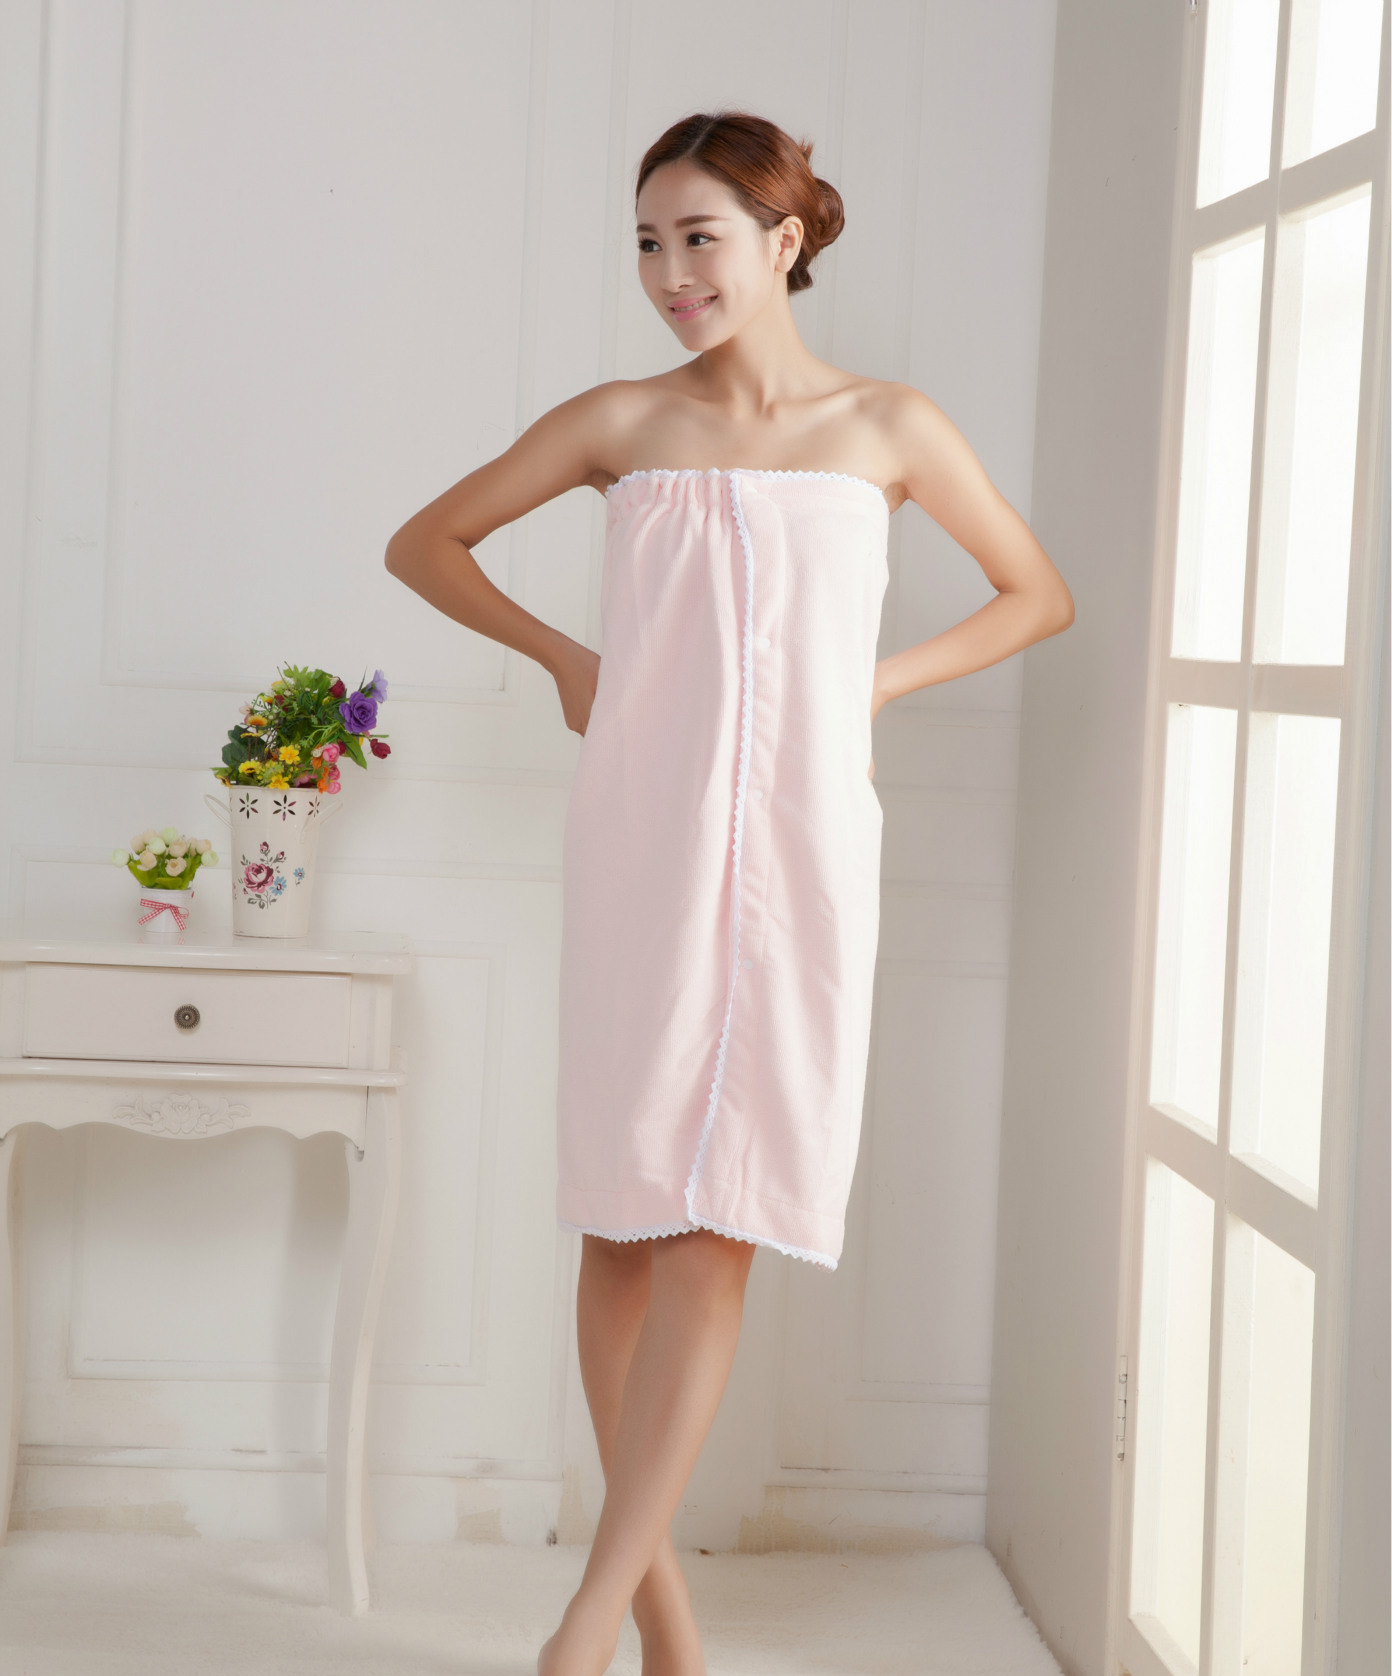 Honana BX-368 Summer Soft Beach Able Wear Spa BathRobe Plush Highly Absorbent Bath Towel Skirt